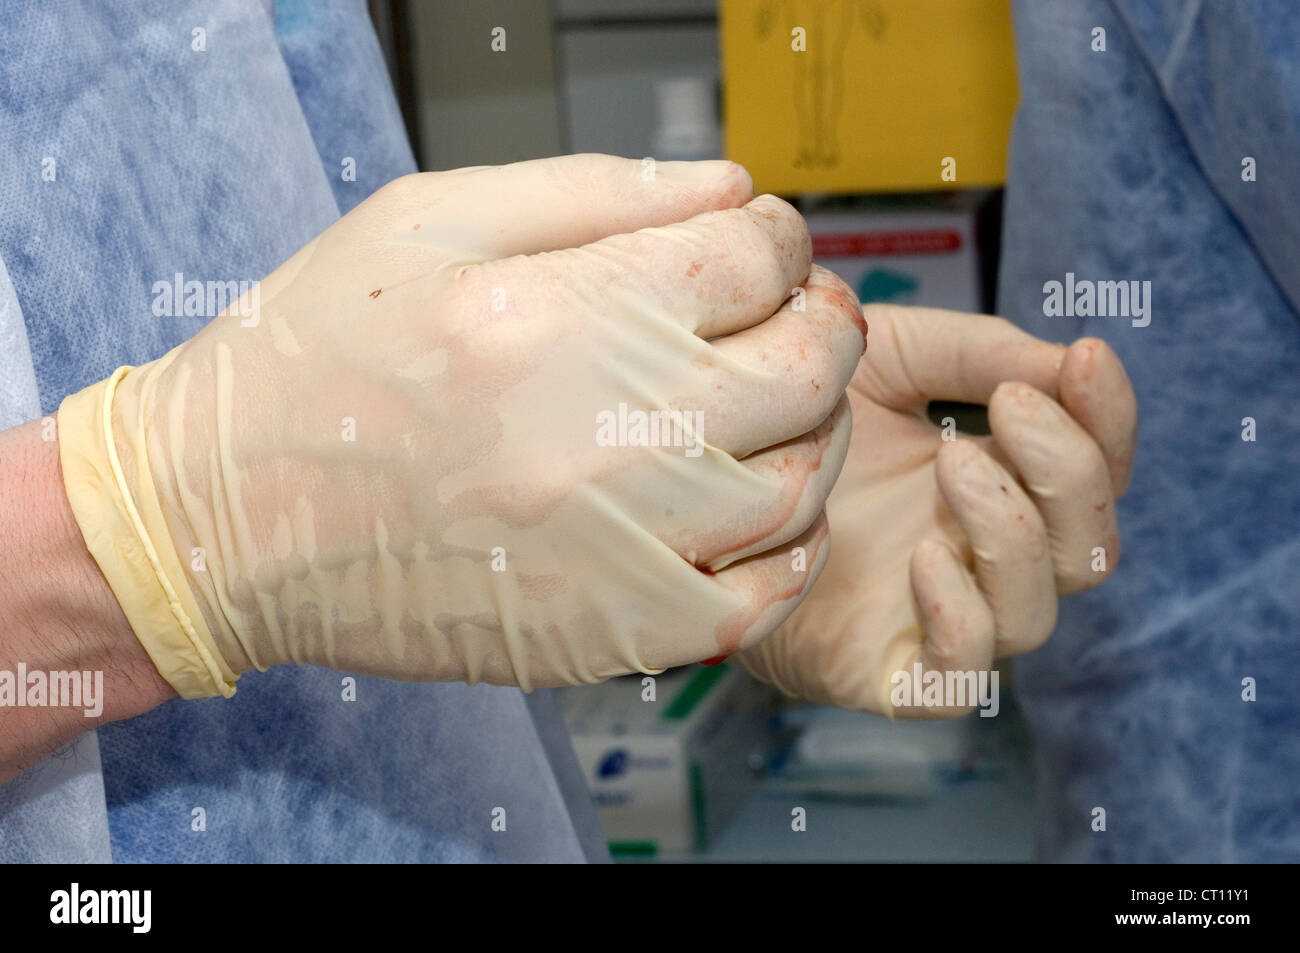 Surgeon's gloved hands. - Stock Image